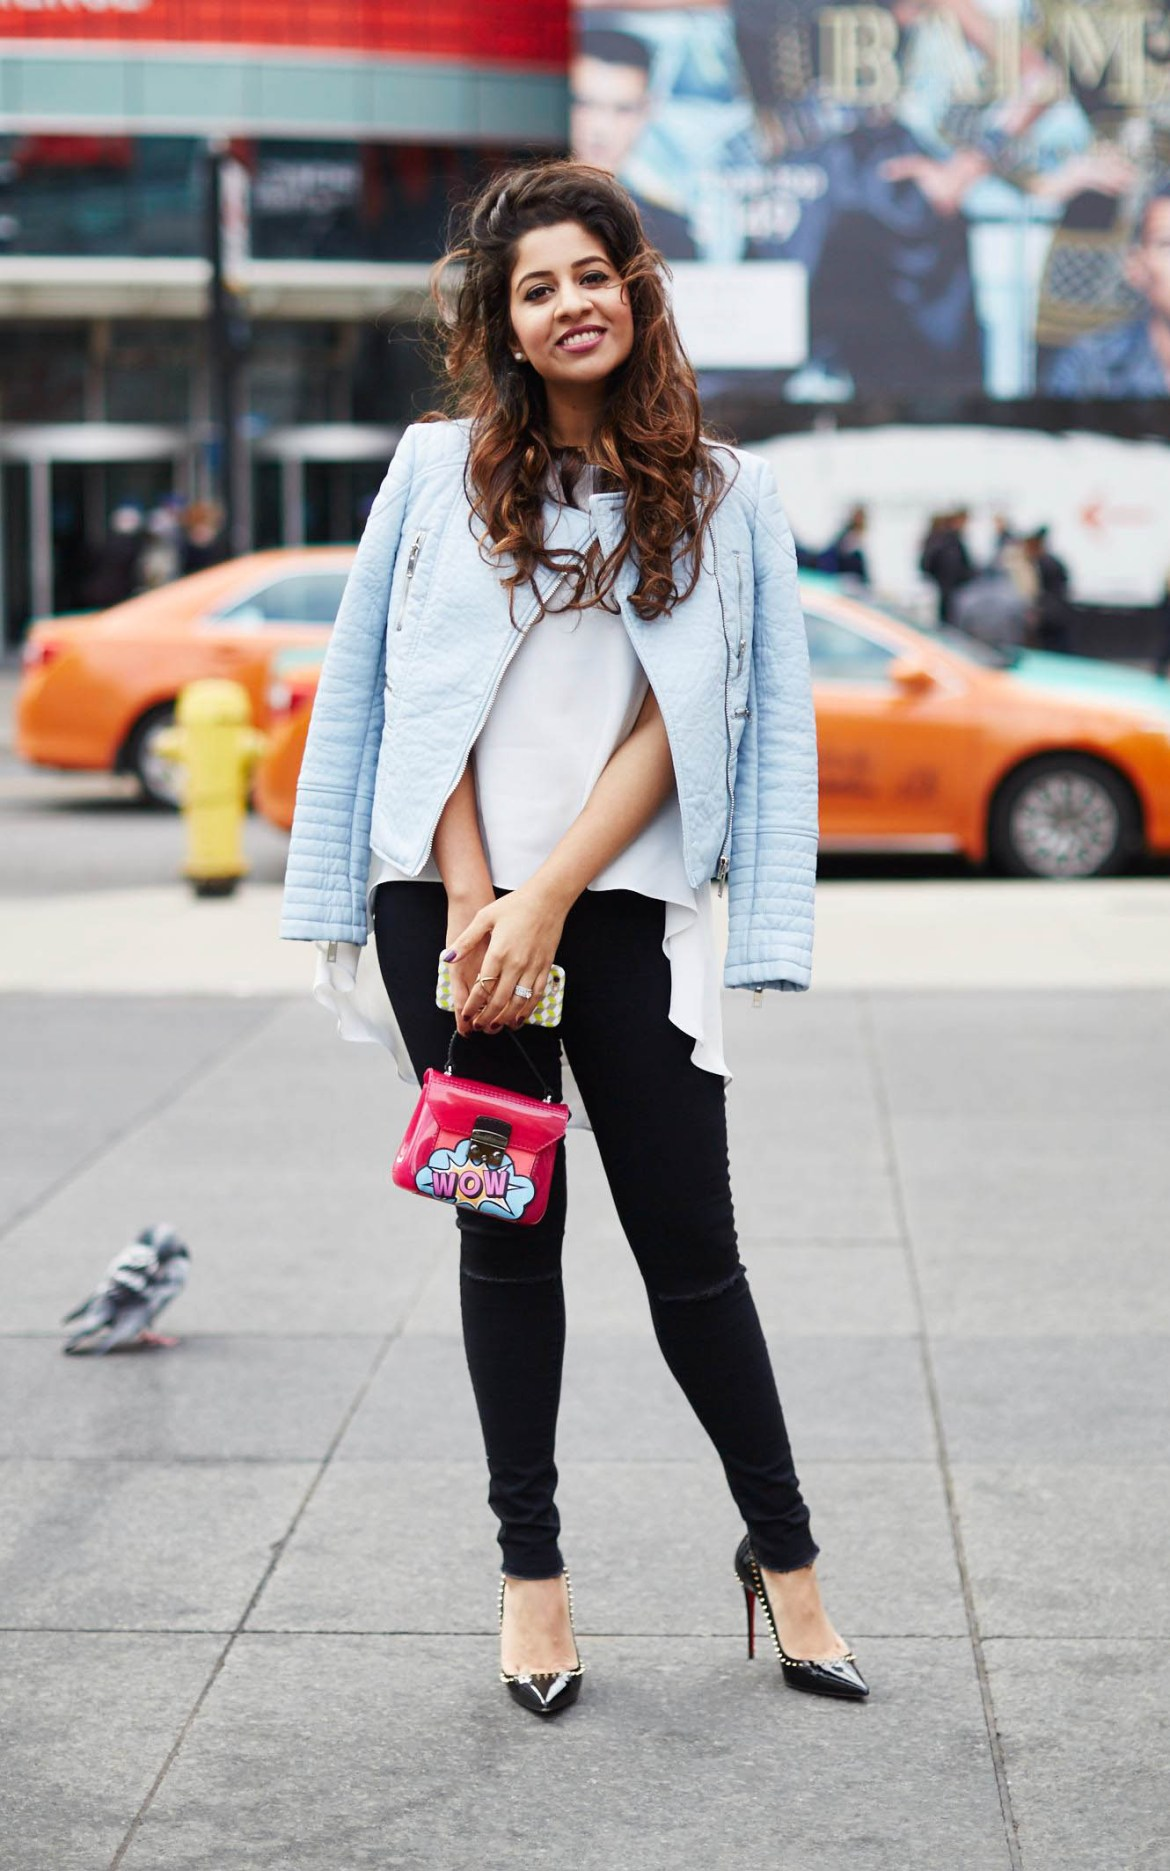 little-blue-zara-leather-jacket-structured-chic-pop-art-furla-white-top-mendocino-ripped-jeans-black-louboutins-t.dot-streetstyle-2